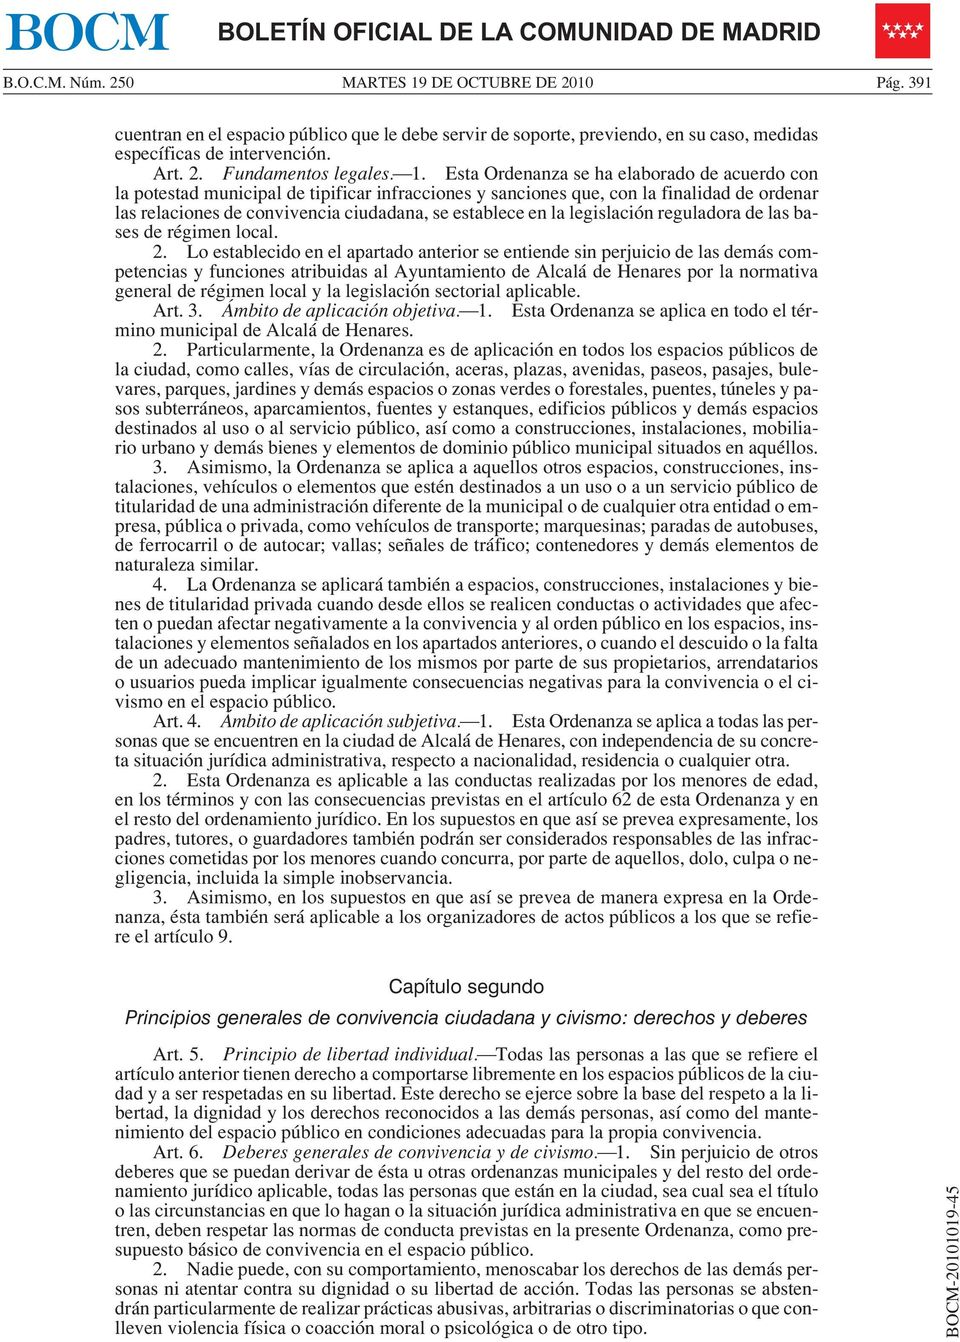 la legislación reguladora de las bases de régimen local. 2.